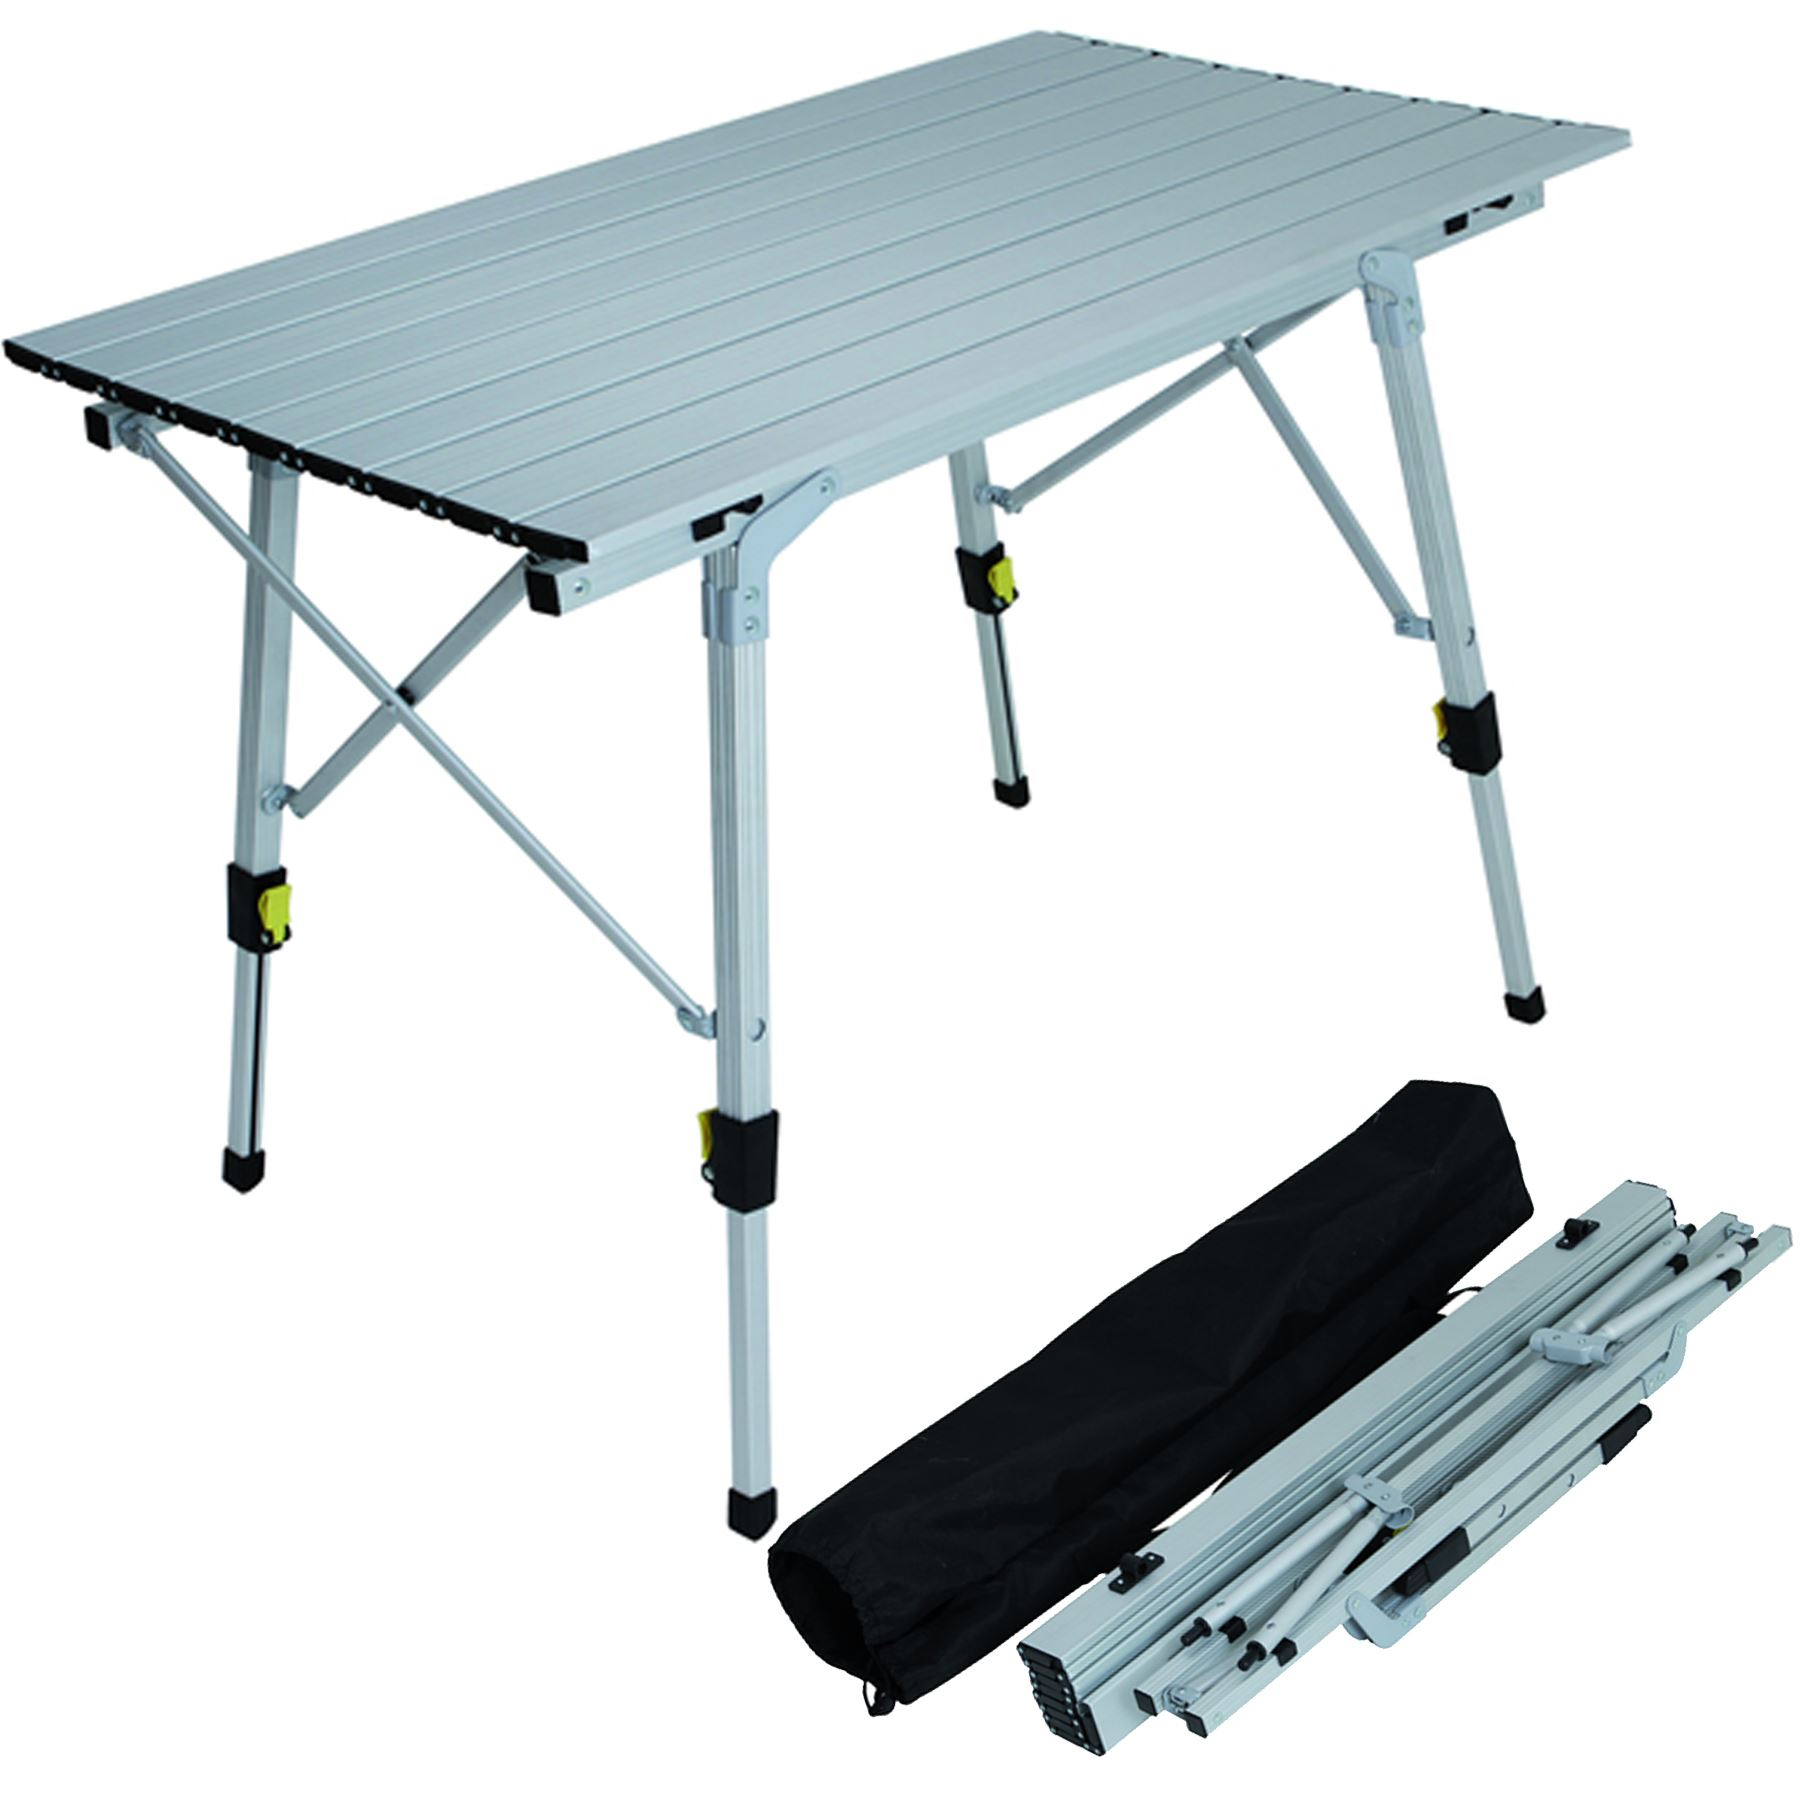 Adjustable aluminium lightweight slatted folding table - Camping table adjustable height ...